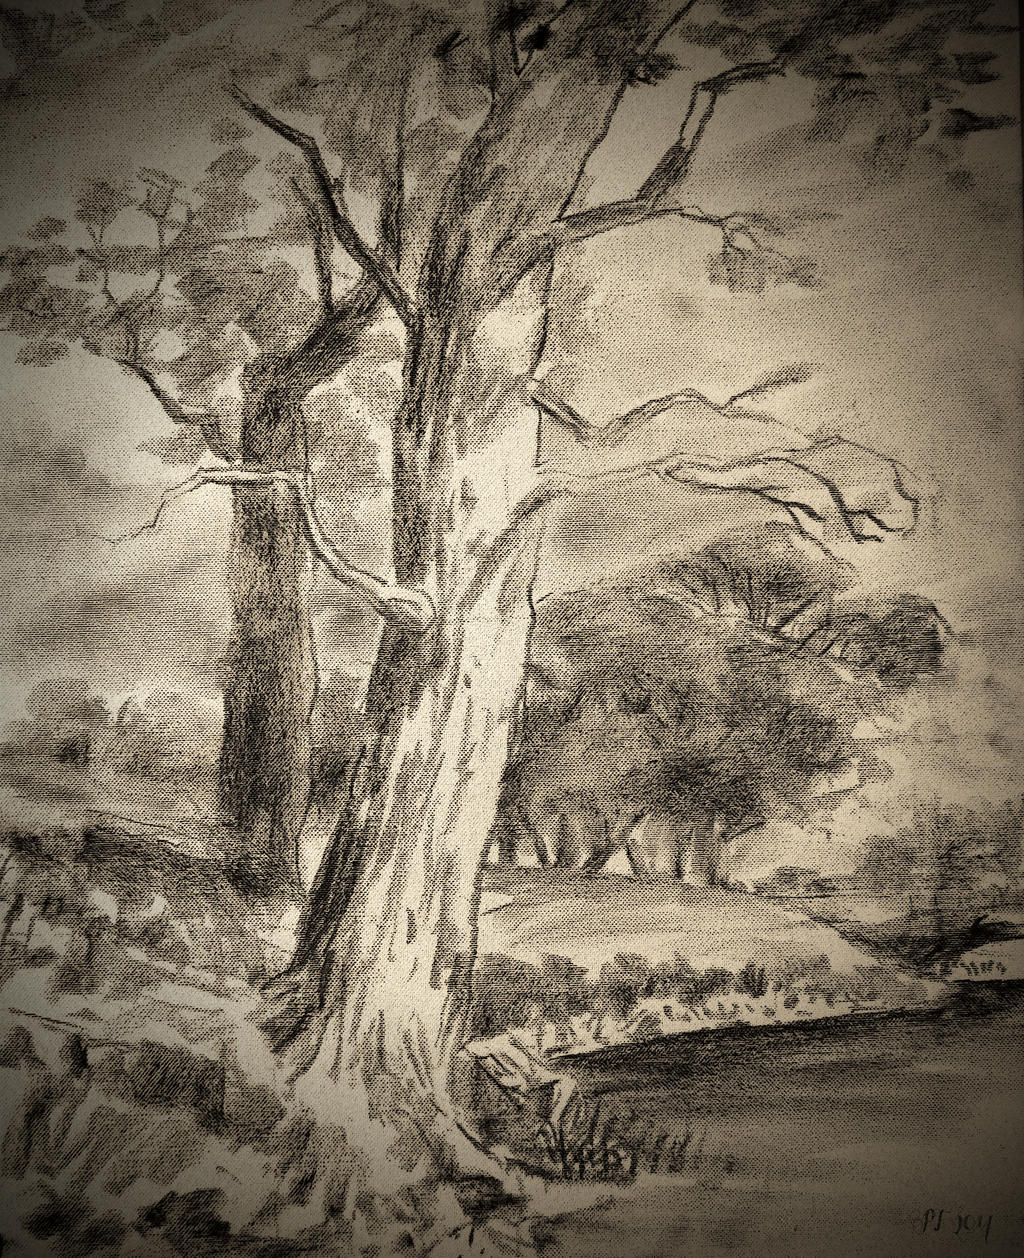 Charcoal sketch by Boias